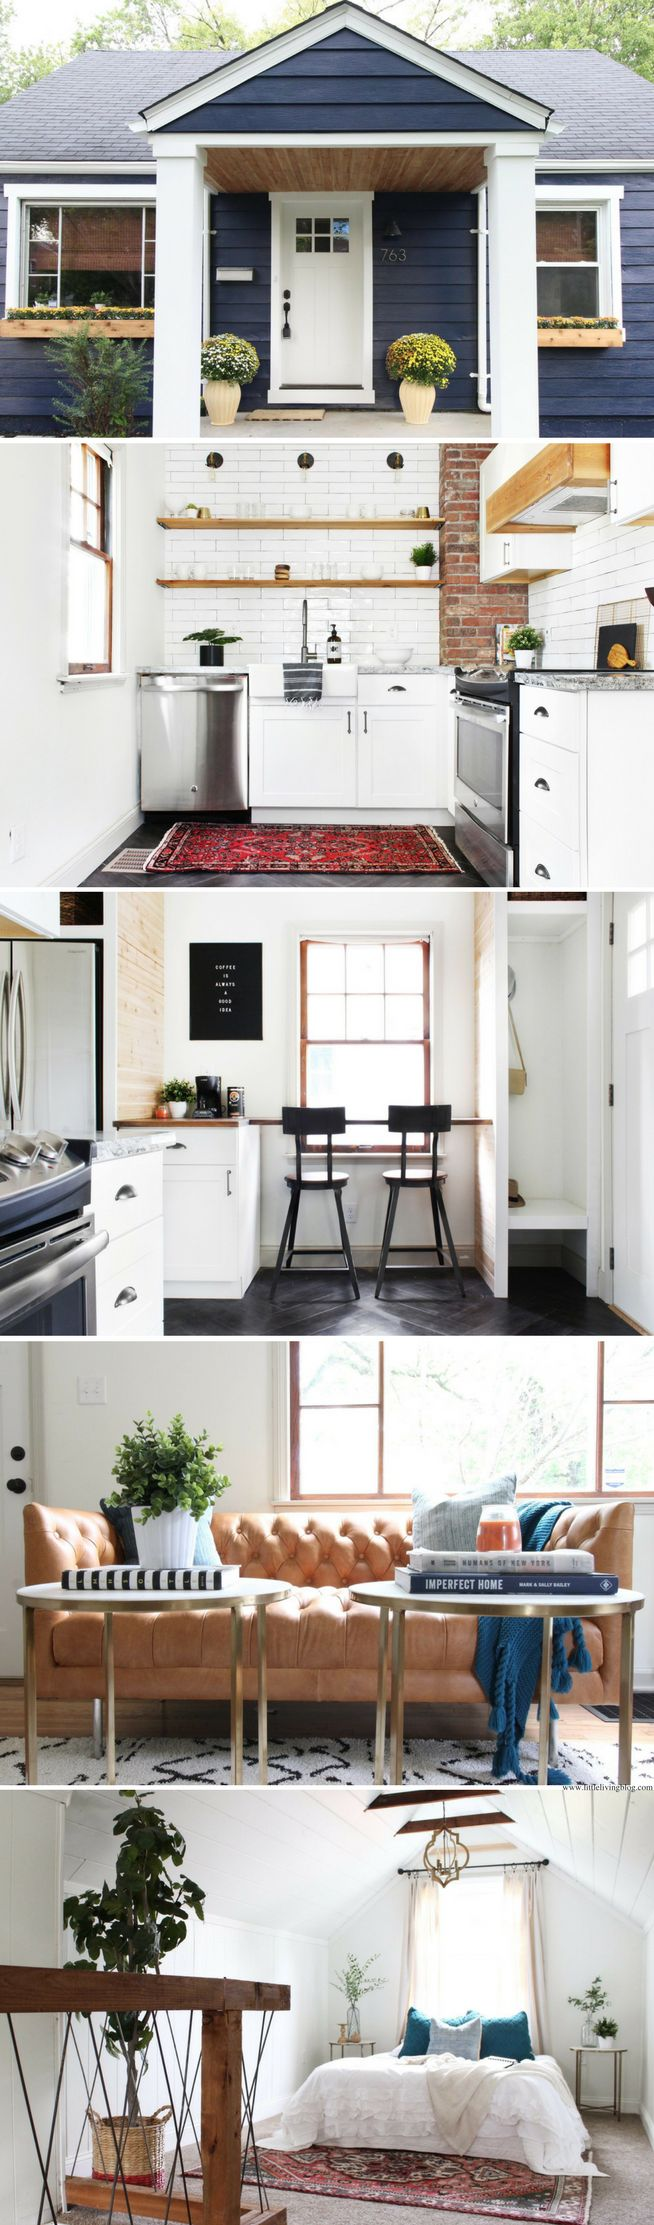 25+ best tiny houses ideas on pinterest | tiny homes, mini houses